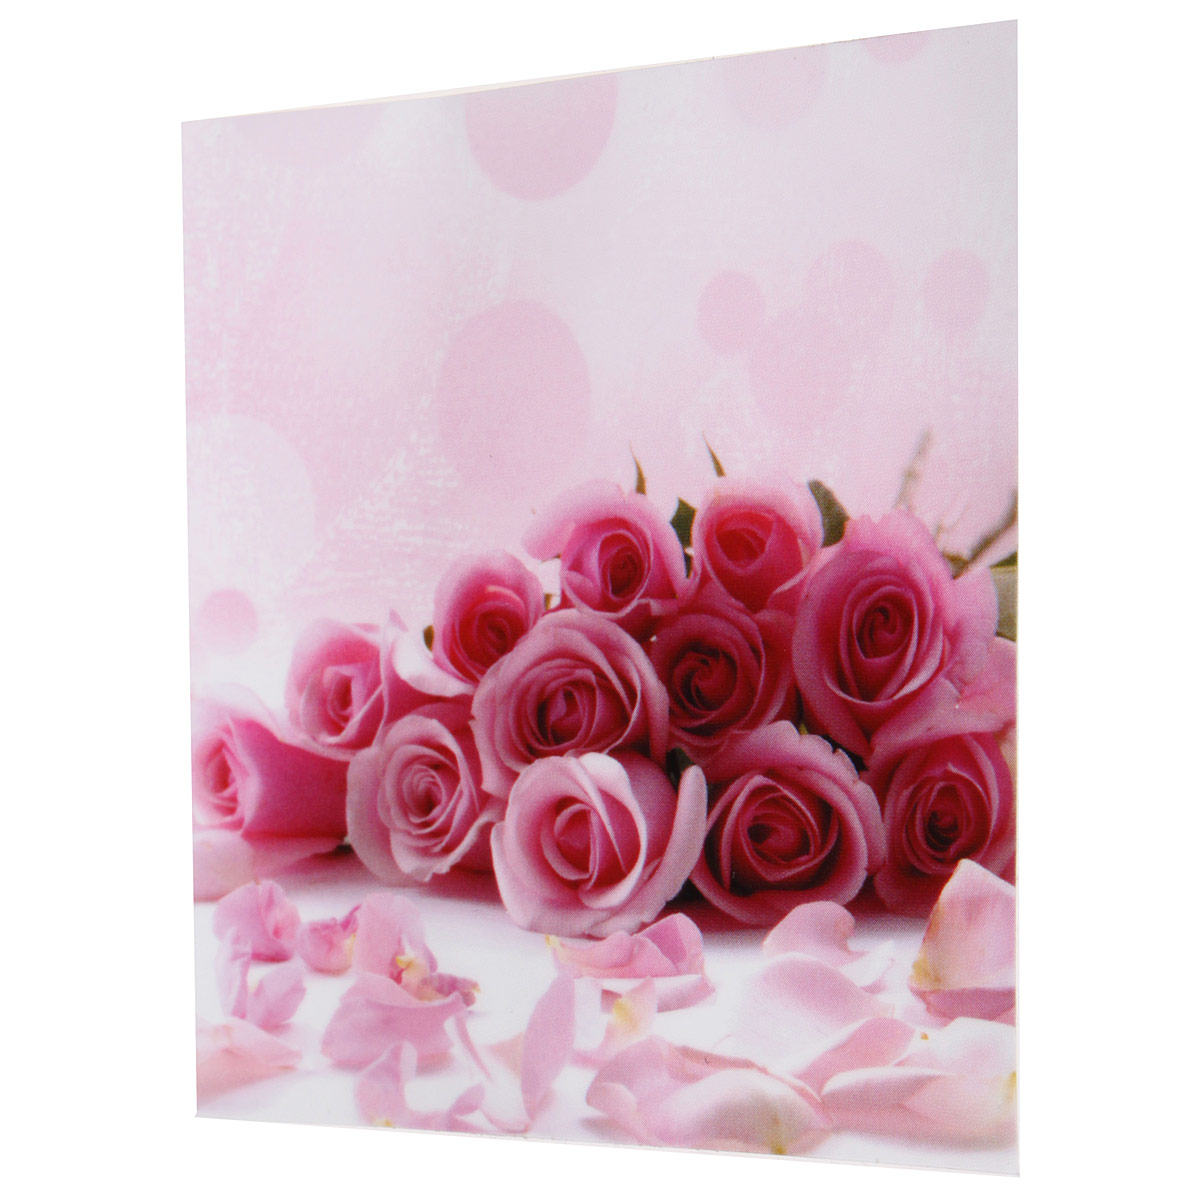 Rose sticker switch socket mural wall paper cover skin decal home autocollant ebay for Autocollant decoratif mural